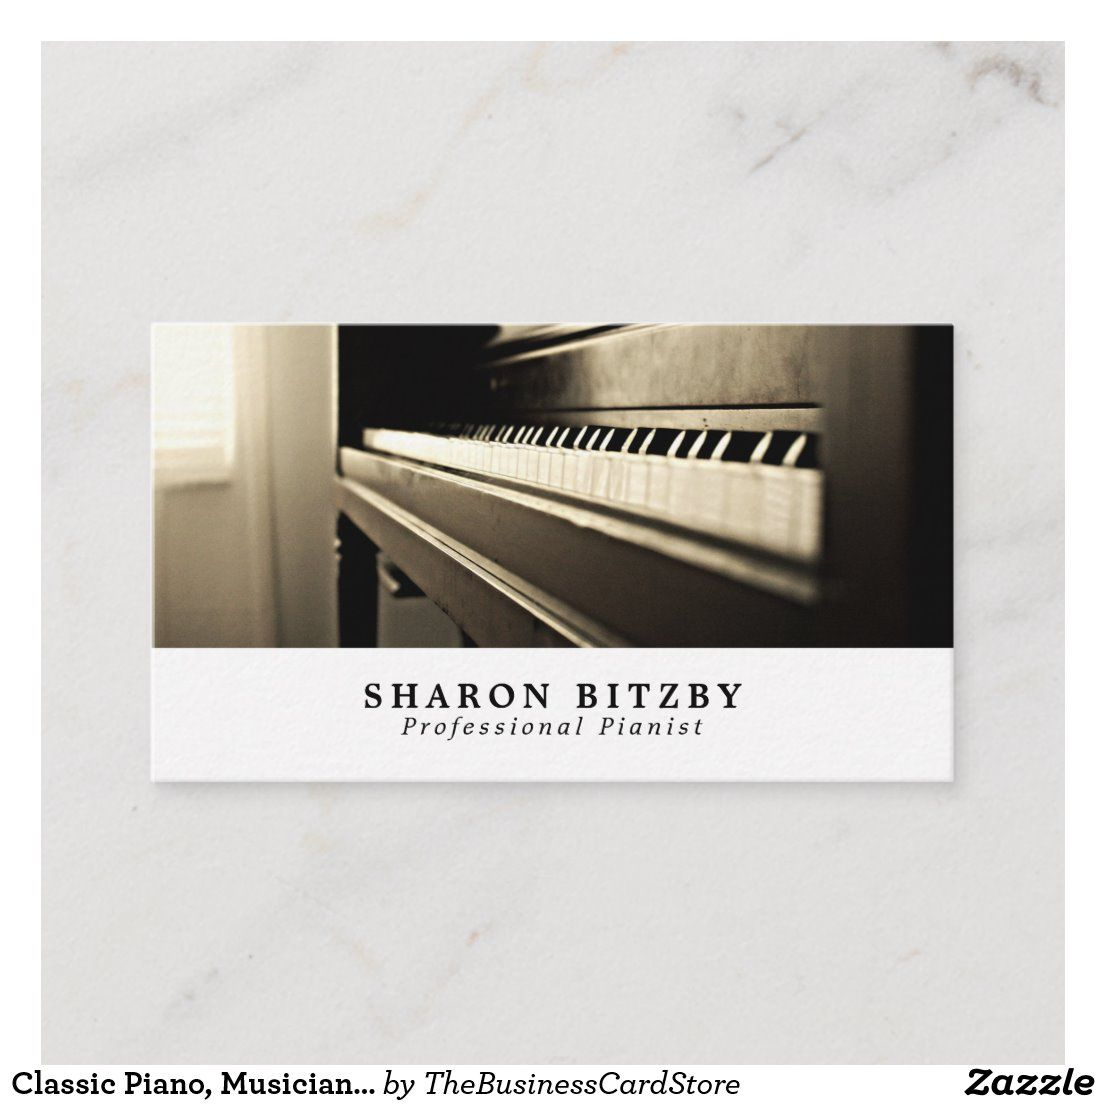 Classic piano musician music industry business card